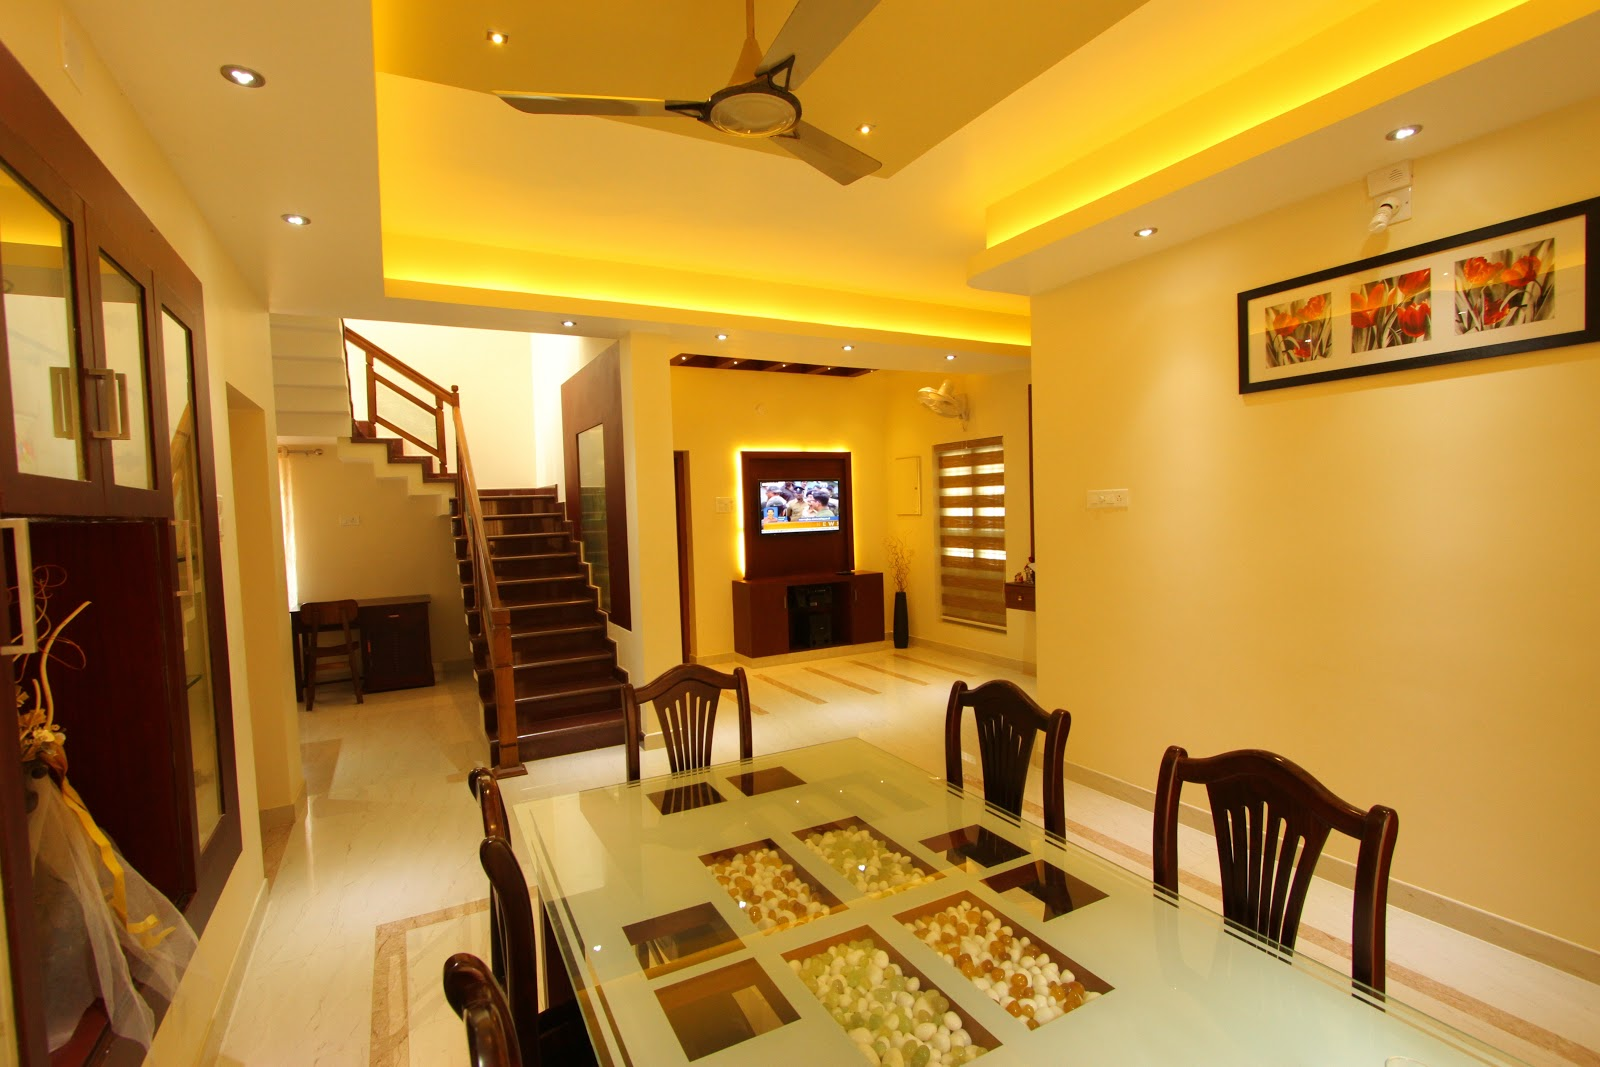 Shilpakala interiors award winning home interior design for Interior desings